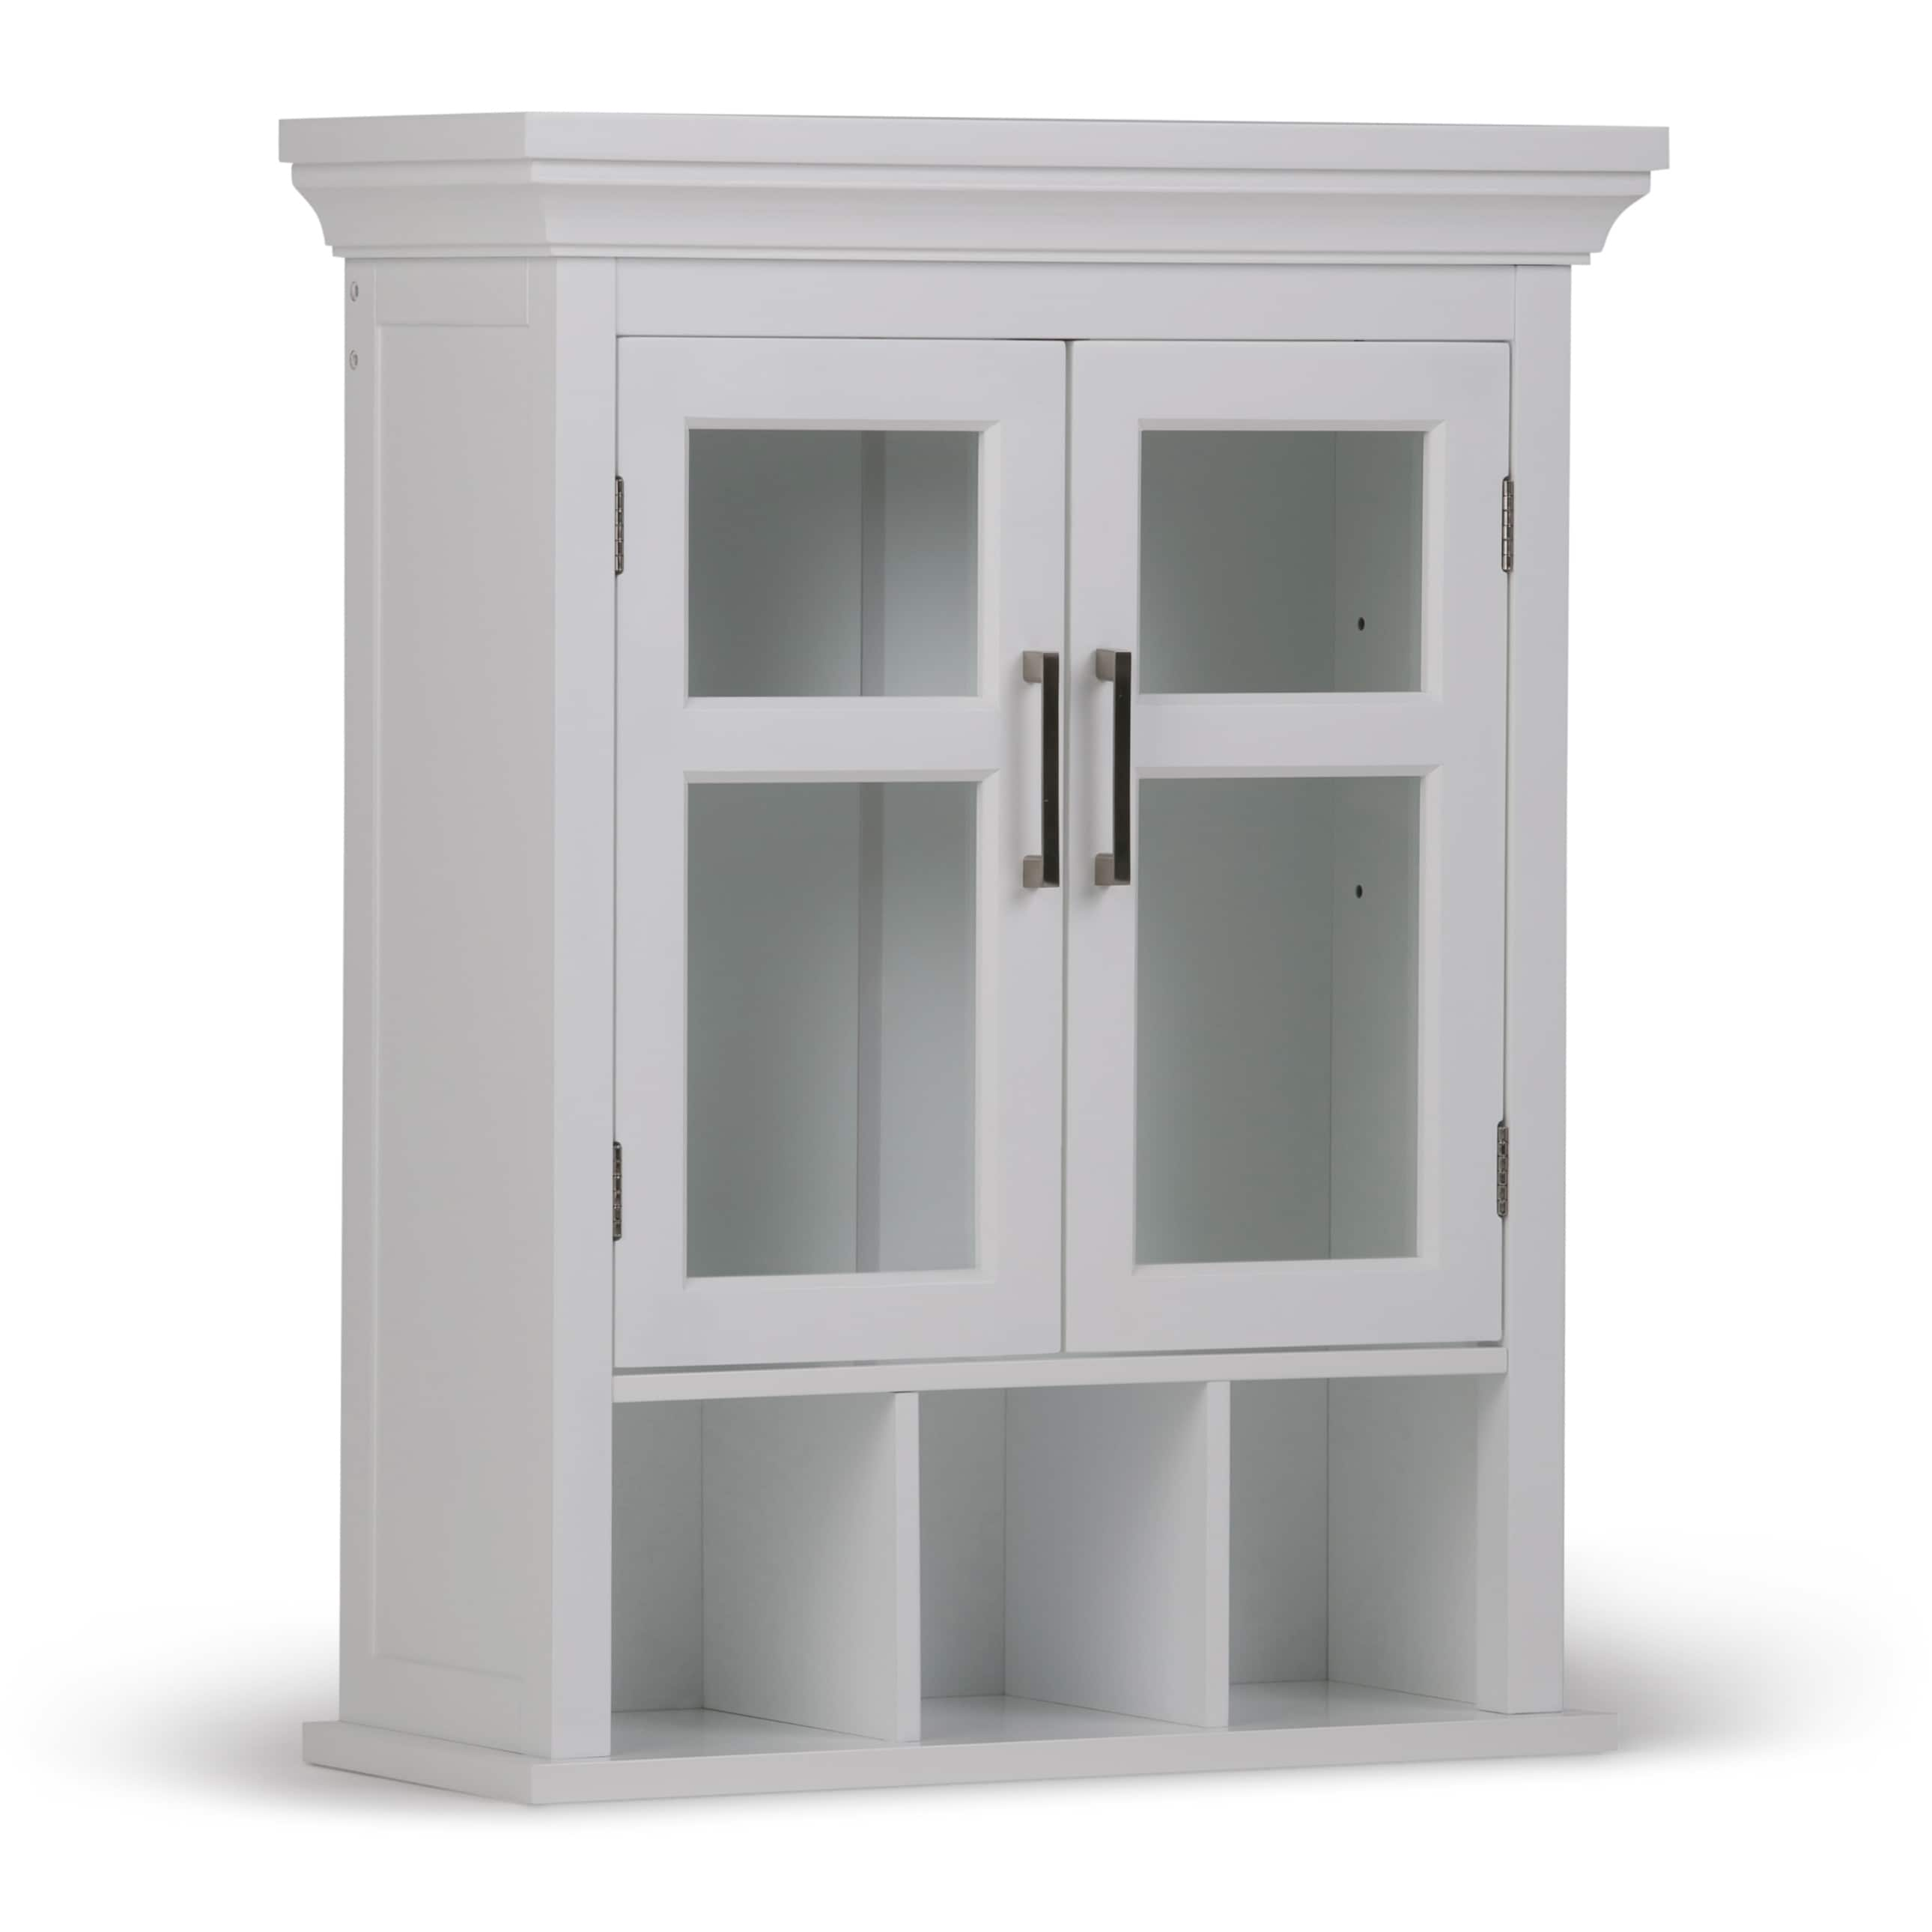 Shop Wyndenhall Hayes Two Door Bathroom Wall Cabinet With Cubbies In